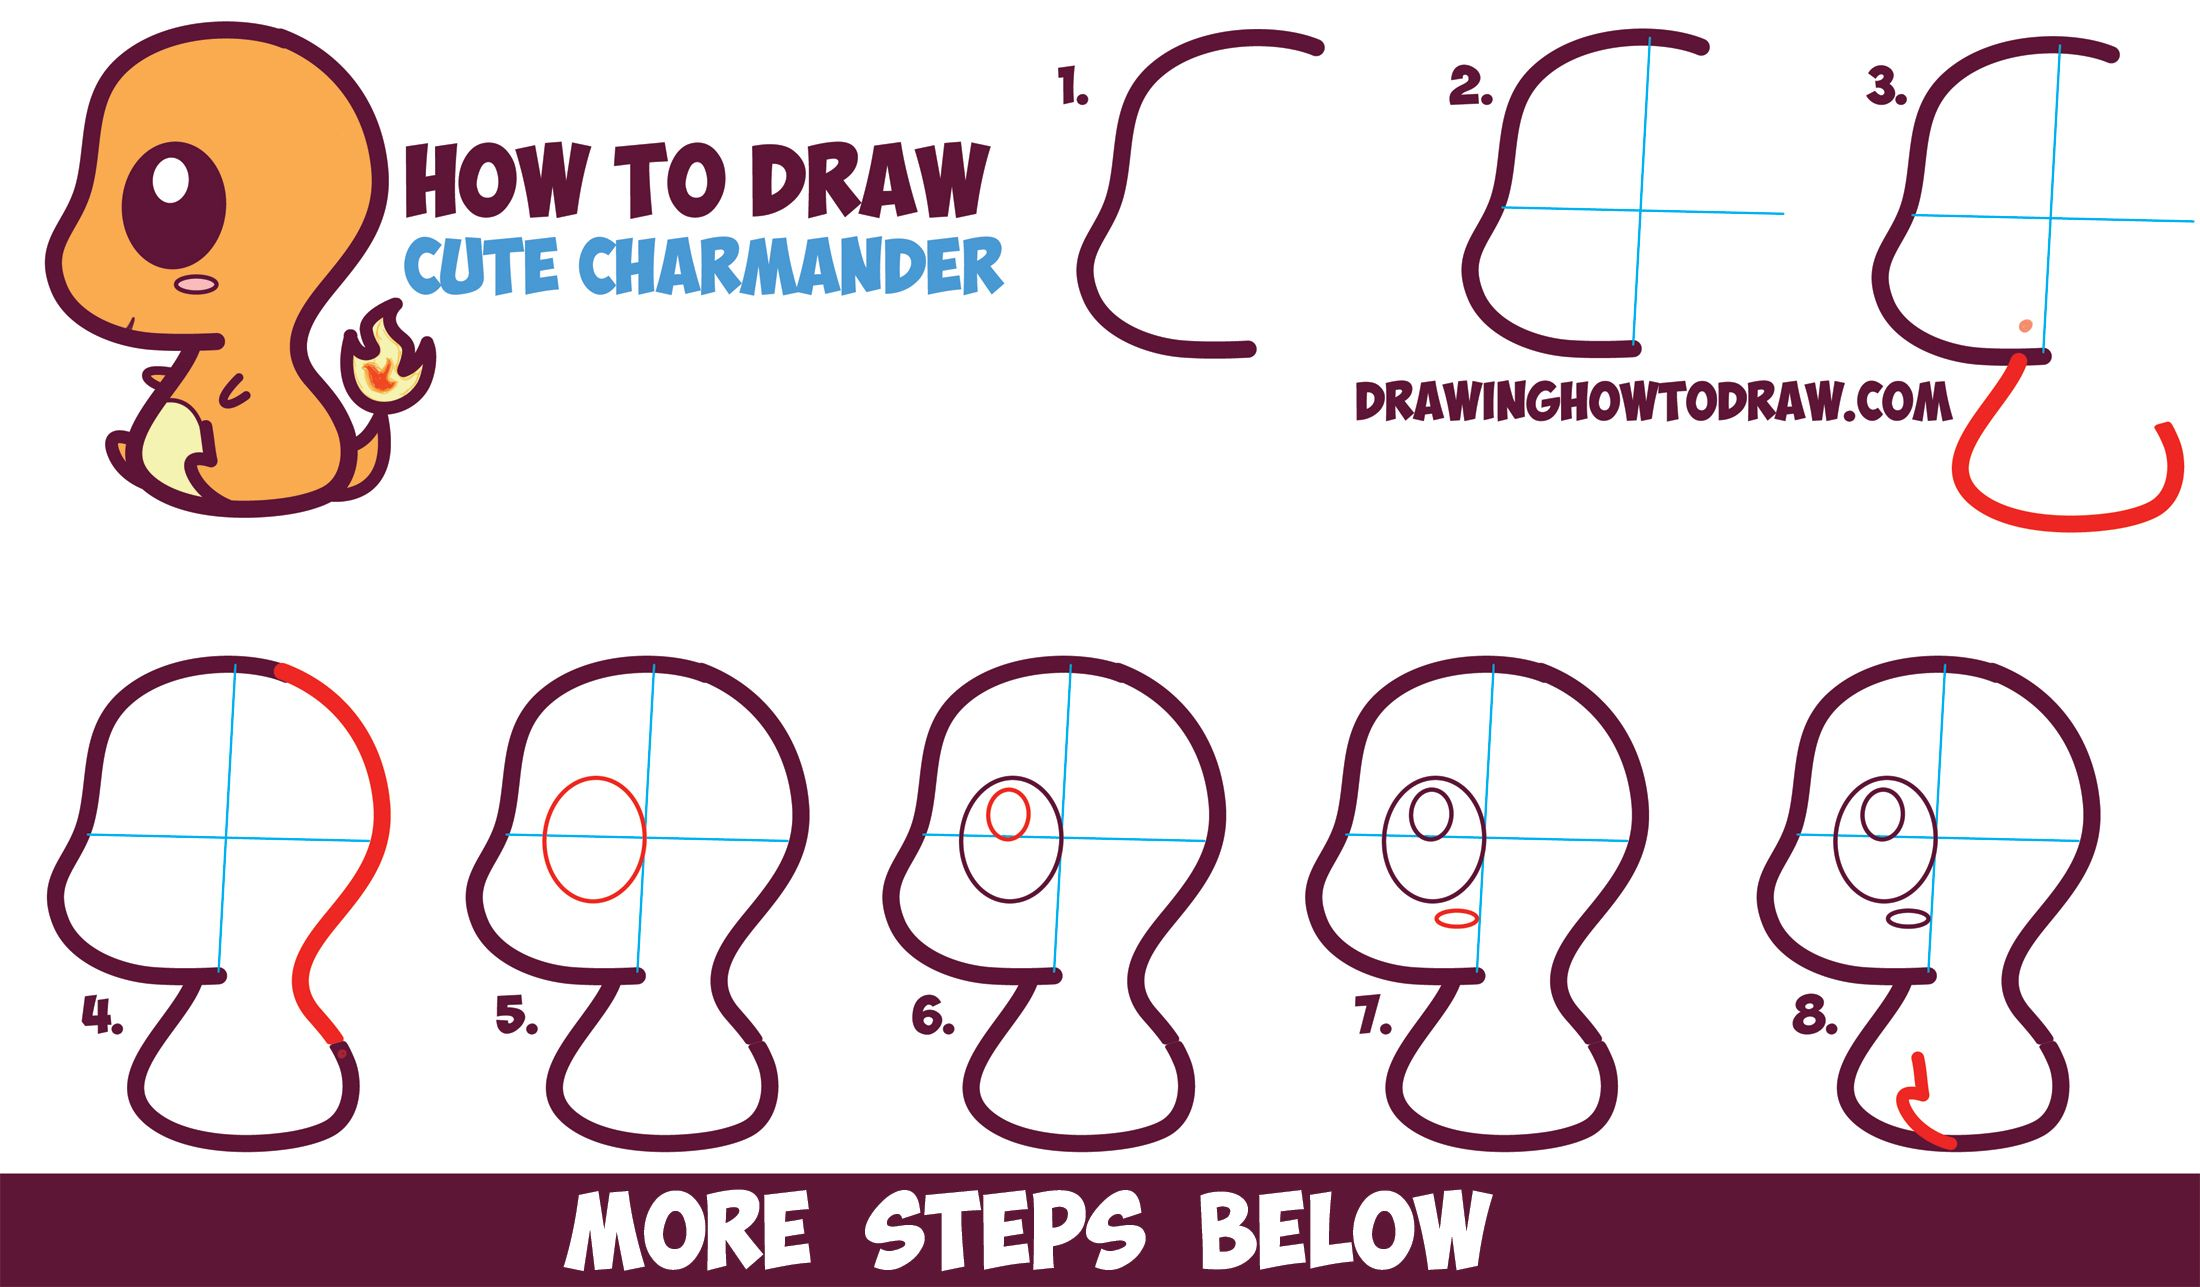 How To Draw Cute Kawaii Chibi Charmander From Pokemon In Easy